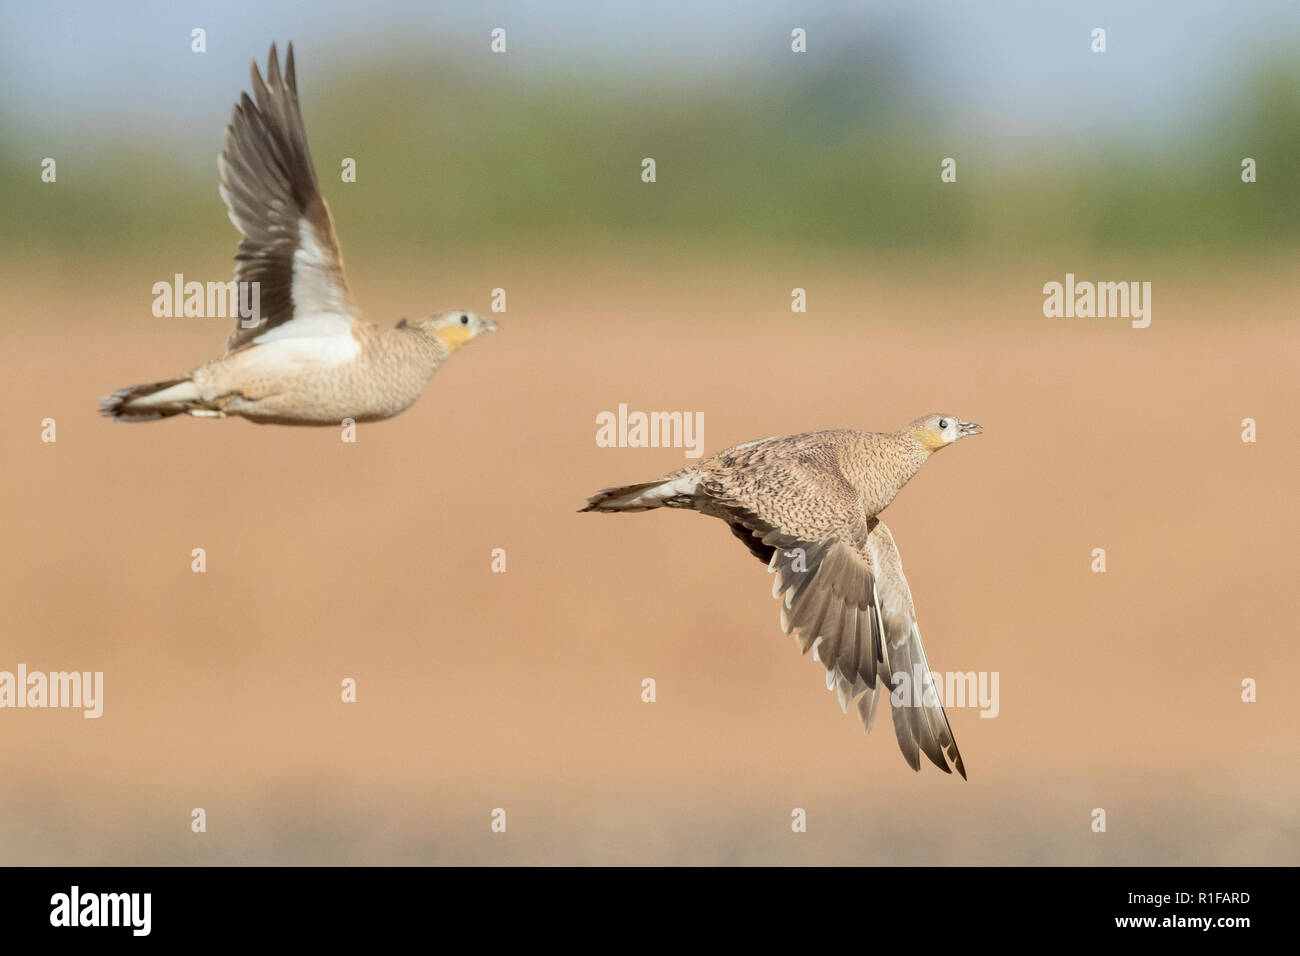 Crowned Sandgrouse (Pterocles coronatus), two females in flight - Stock Image